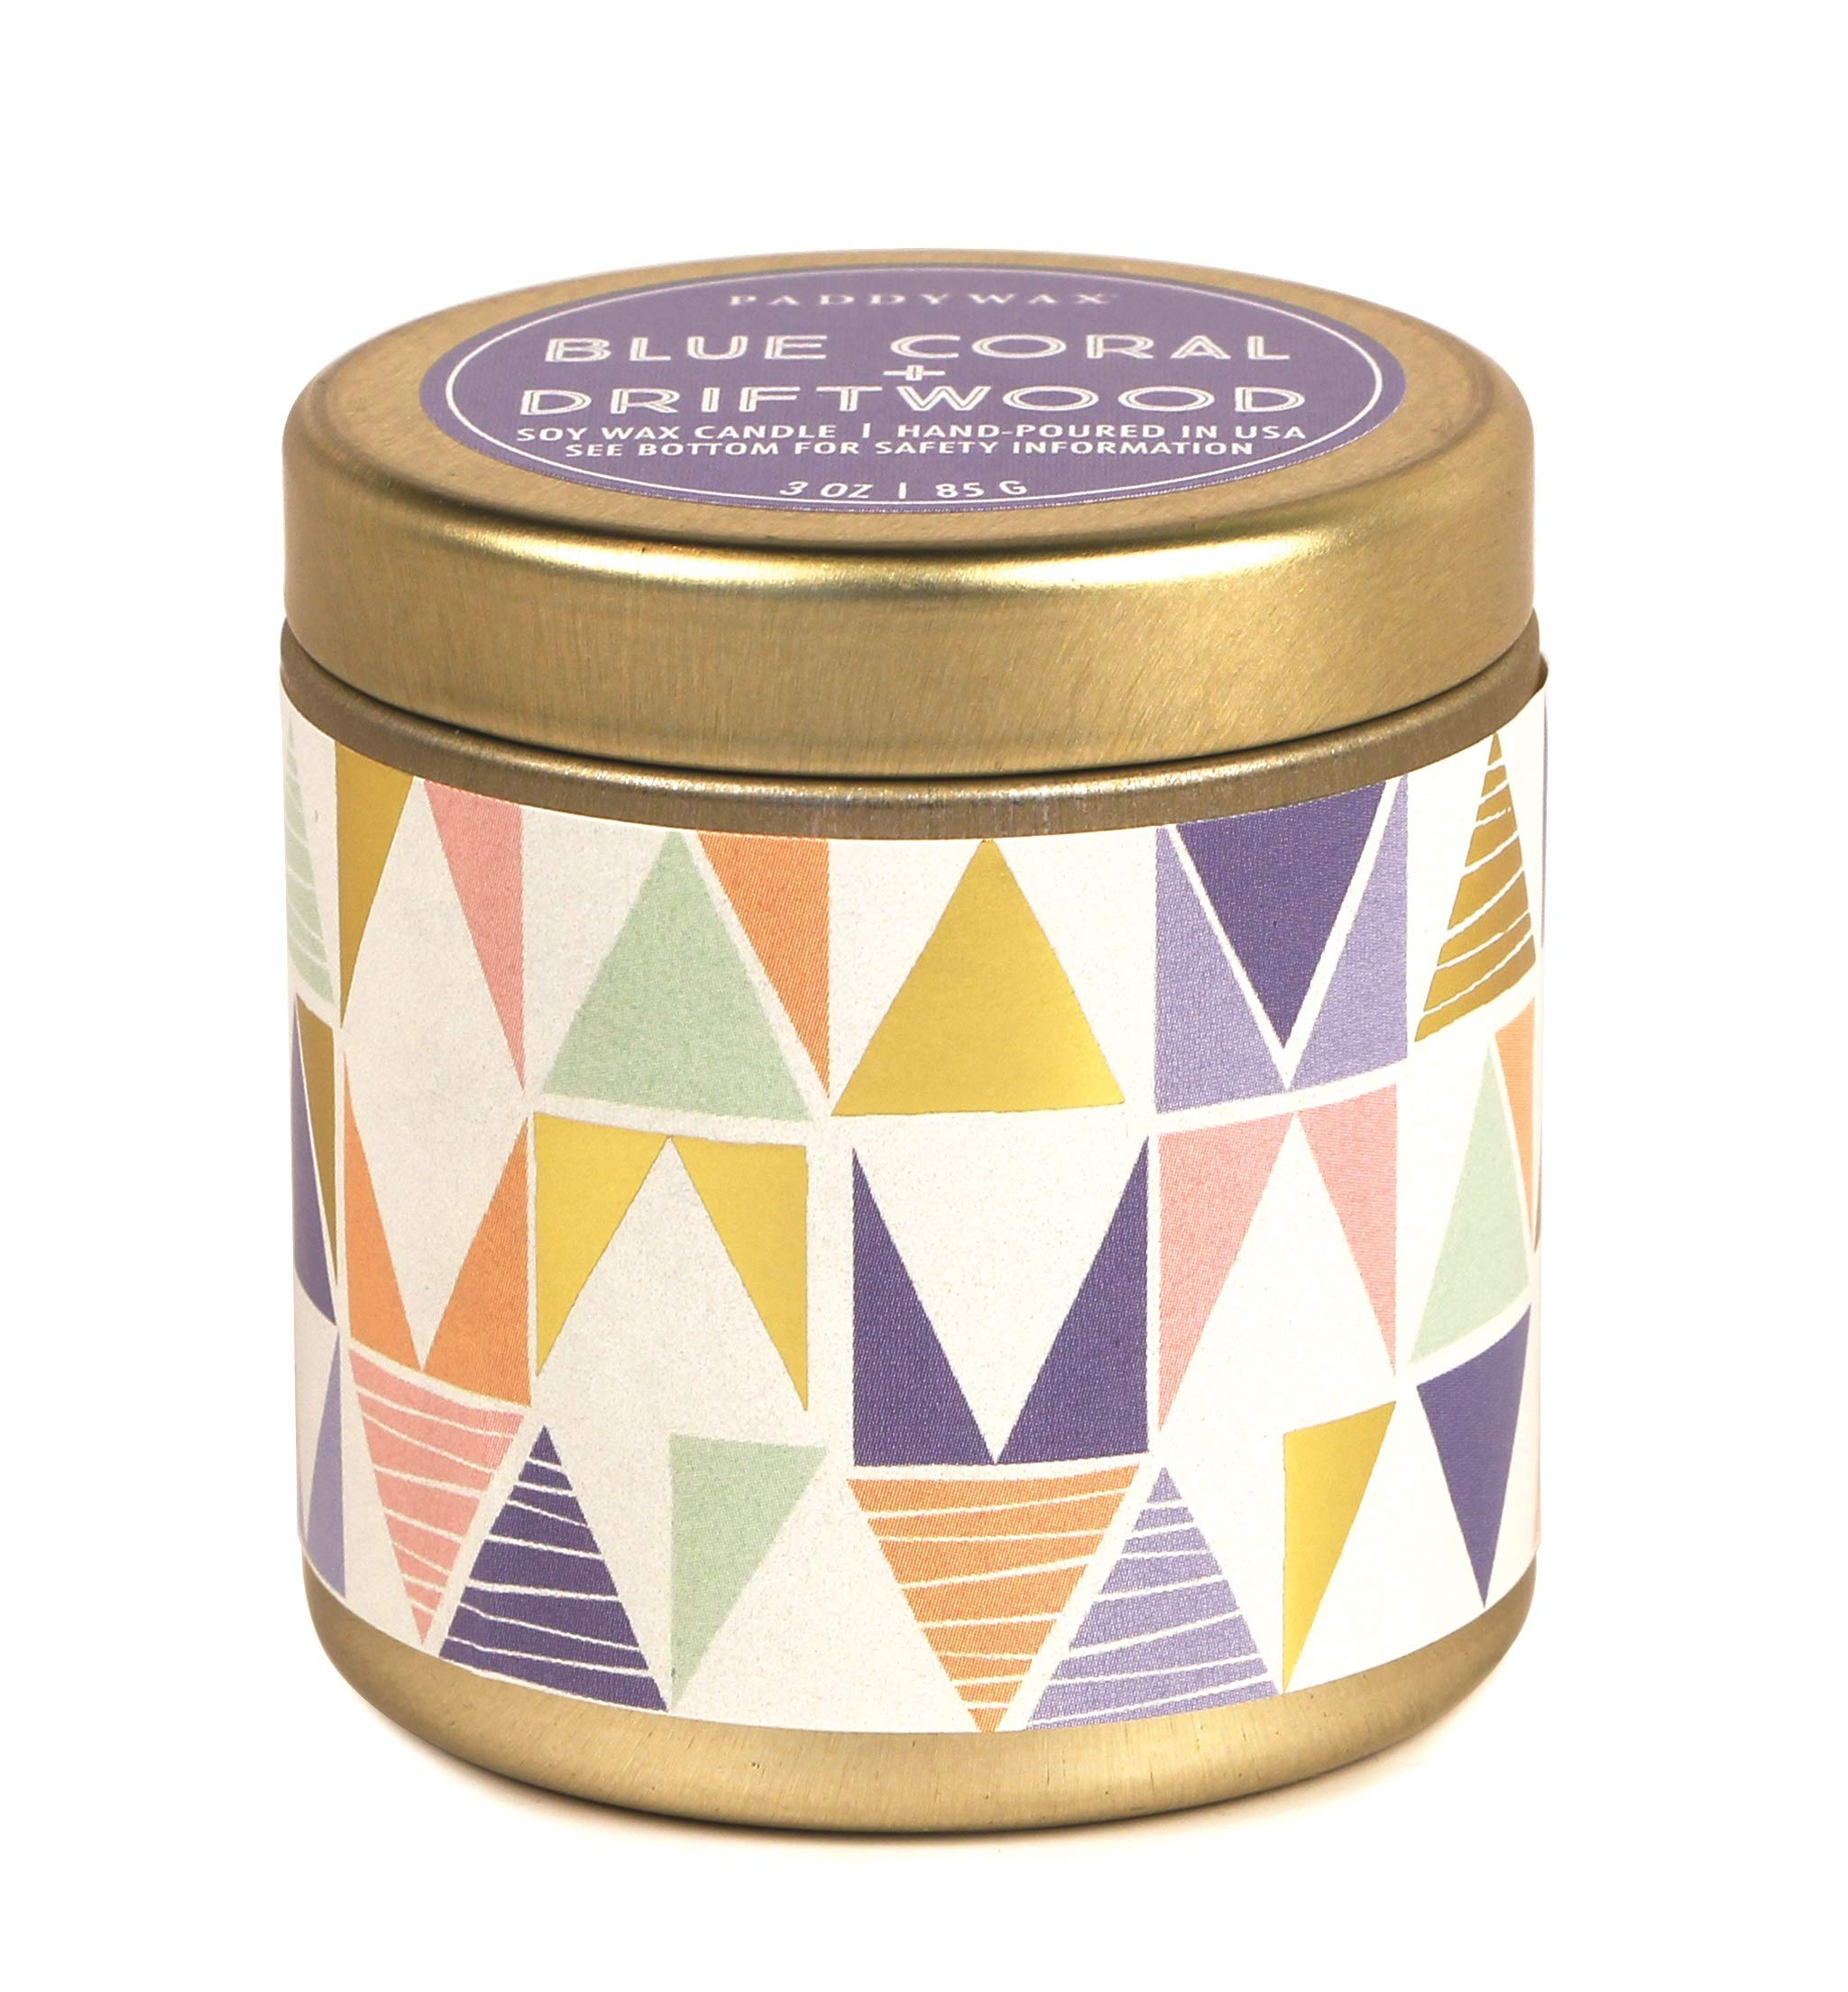 Paddywax Candles Kaleidoscope Collection Travel Tin Candle, Coral & Driftwood, 1 EA, Blue Coral and Driftwood